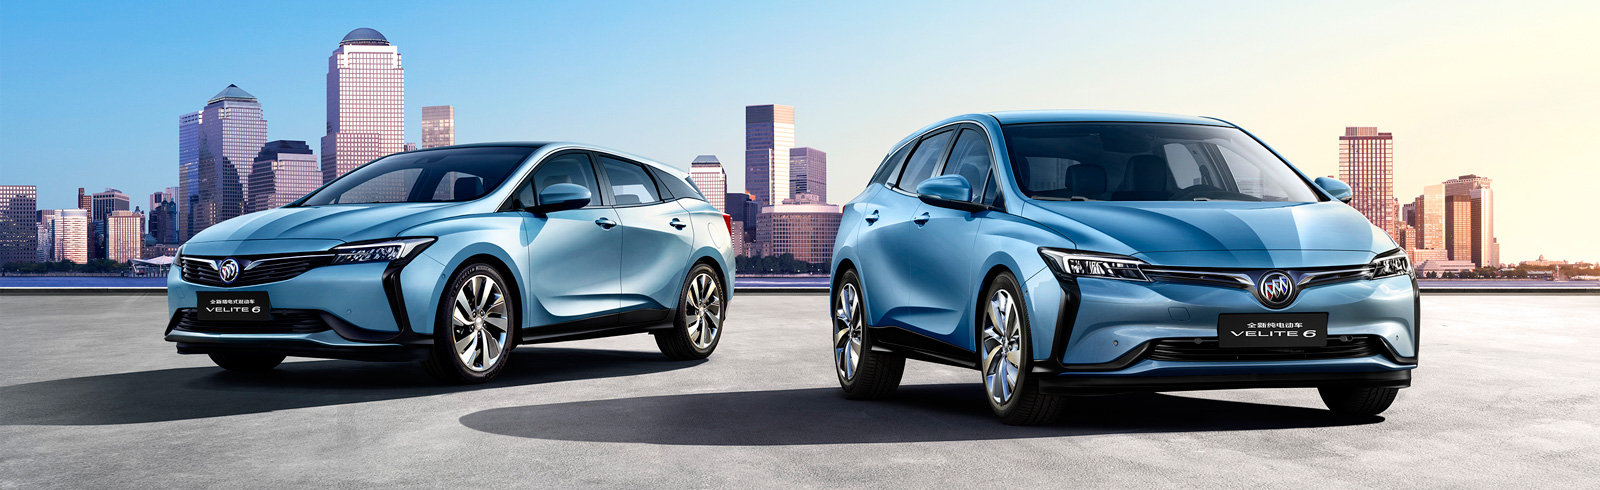 GM launches Buick Velite 6 EV in China